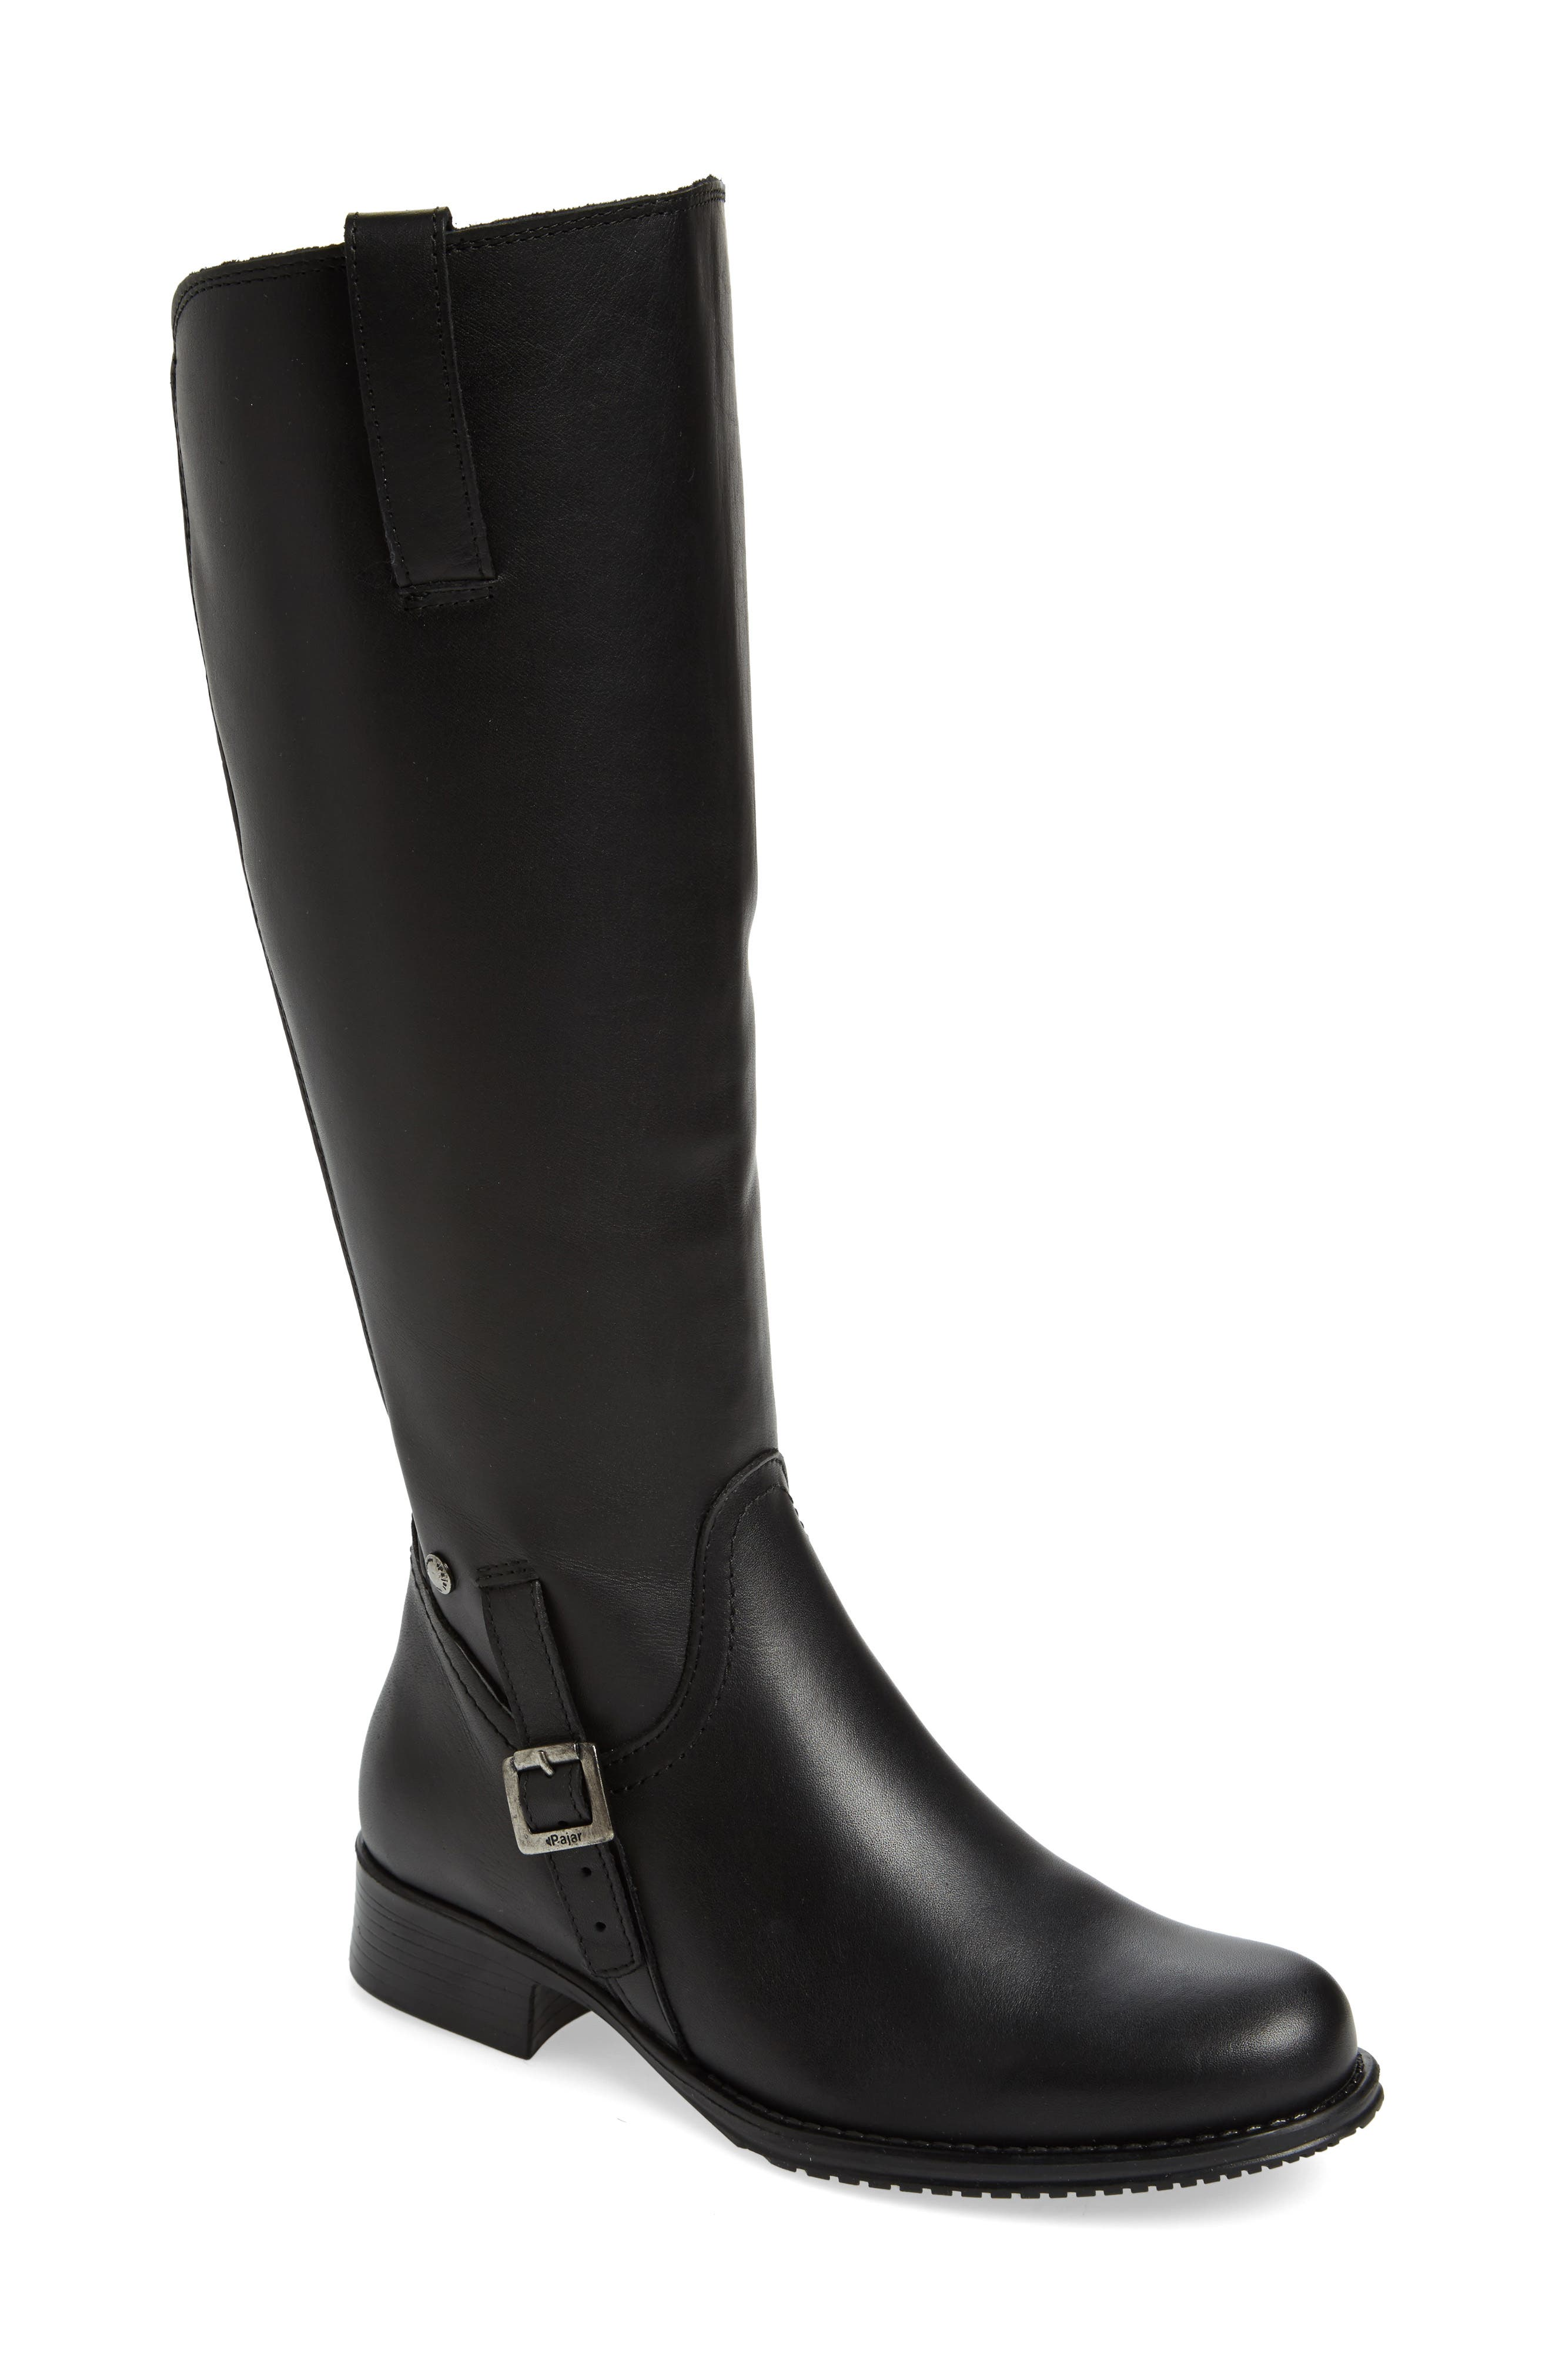 Dogueno Waterproof Boot,                             Main thumbnail 1, color,                             Black Leather